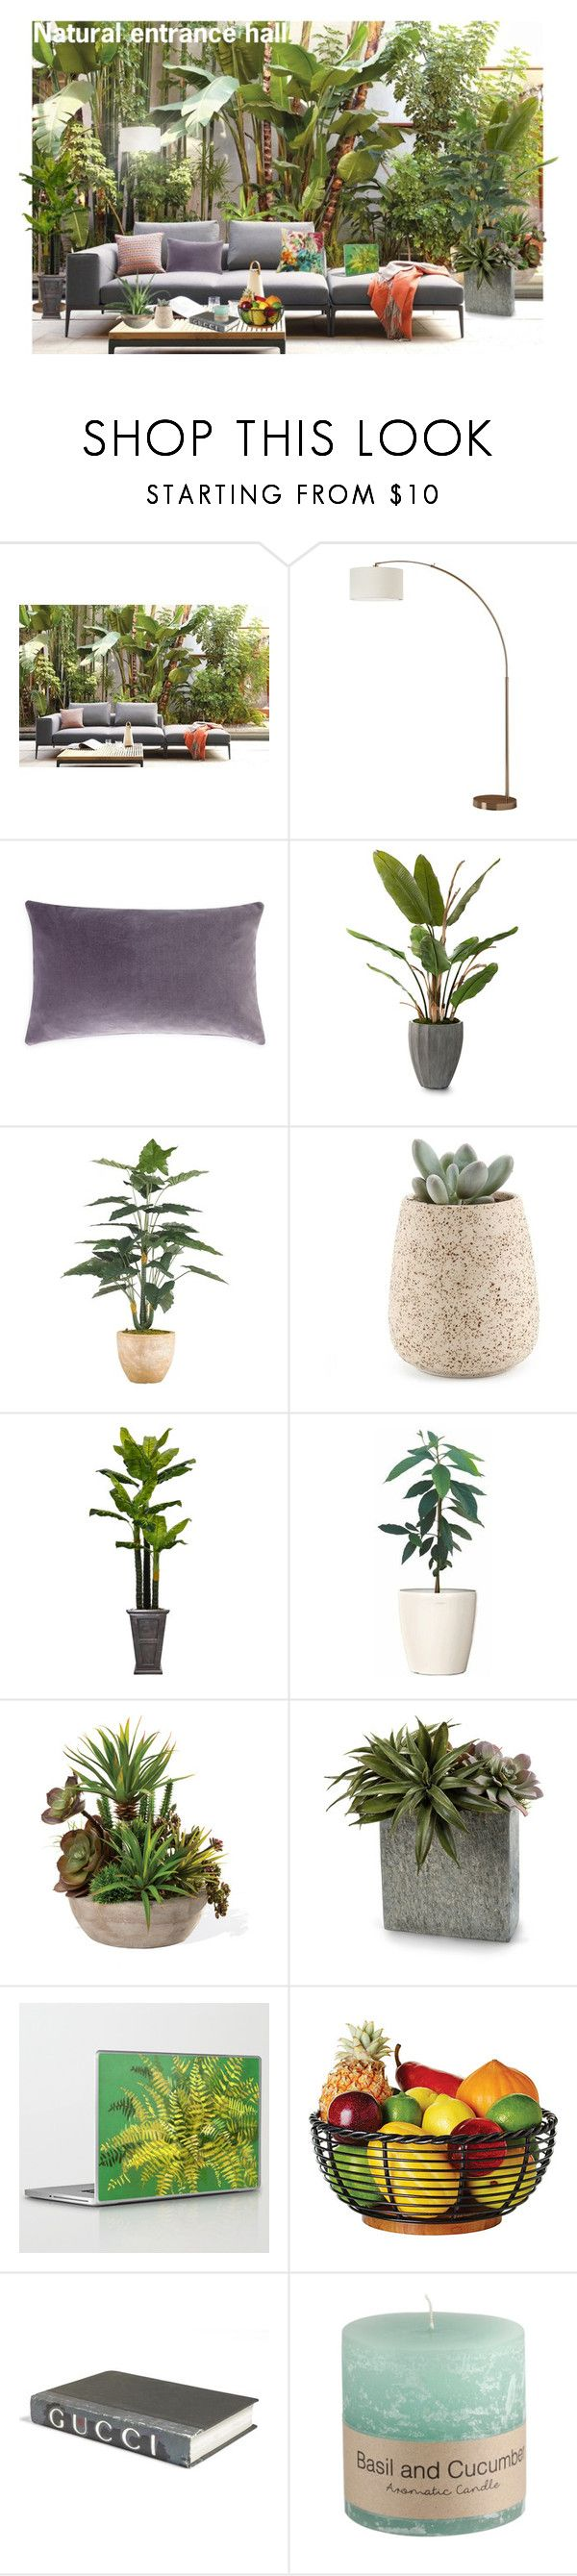 """Natural entrance hall"" by irina-demydovych ❤ liked on Polyvore featuring interior, interiors, interior design, home, home decor, interior decorating, Design Within Reach, John-Richard, Laura Ashley and E. Lawrence, Ltd."